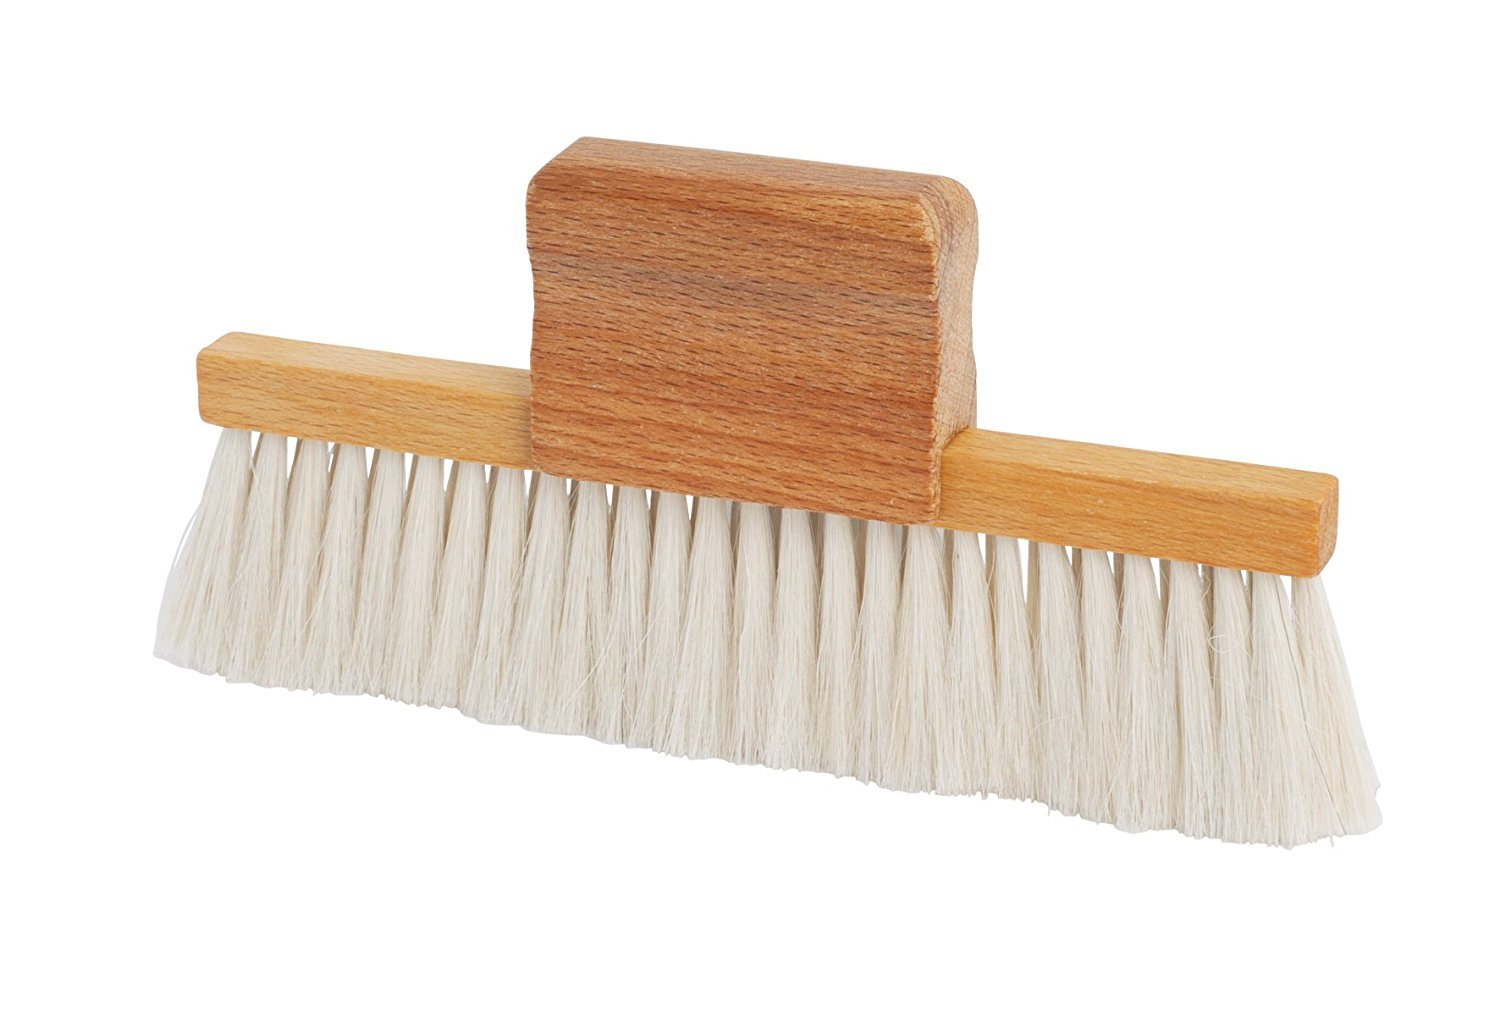 Bü rstenhaus Redecker Goat Hair Table Brush with Oiled Beechwood Handle, 5-7/8-Inches by 3-Inches Bürstenhaus Redecker GmbH Germany 420115